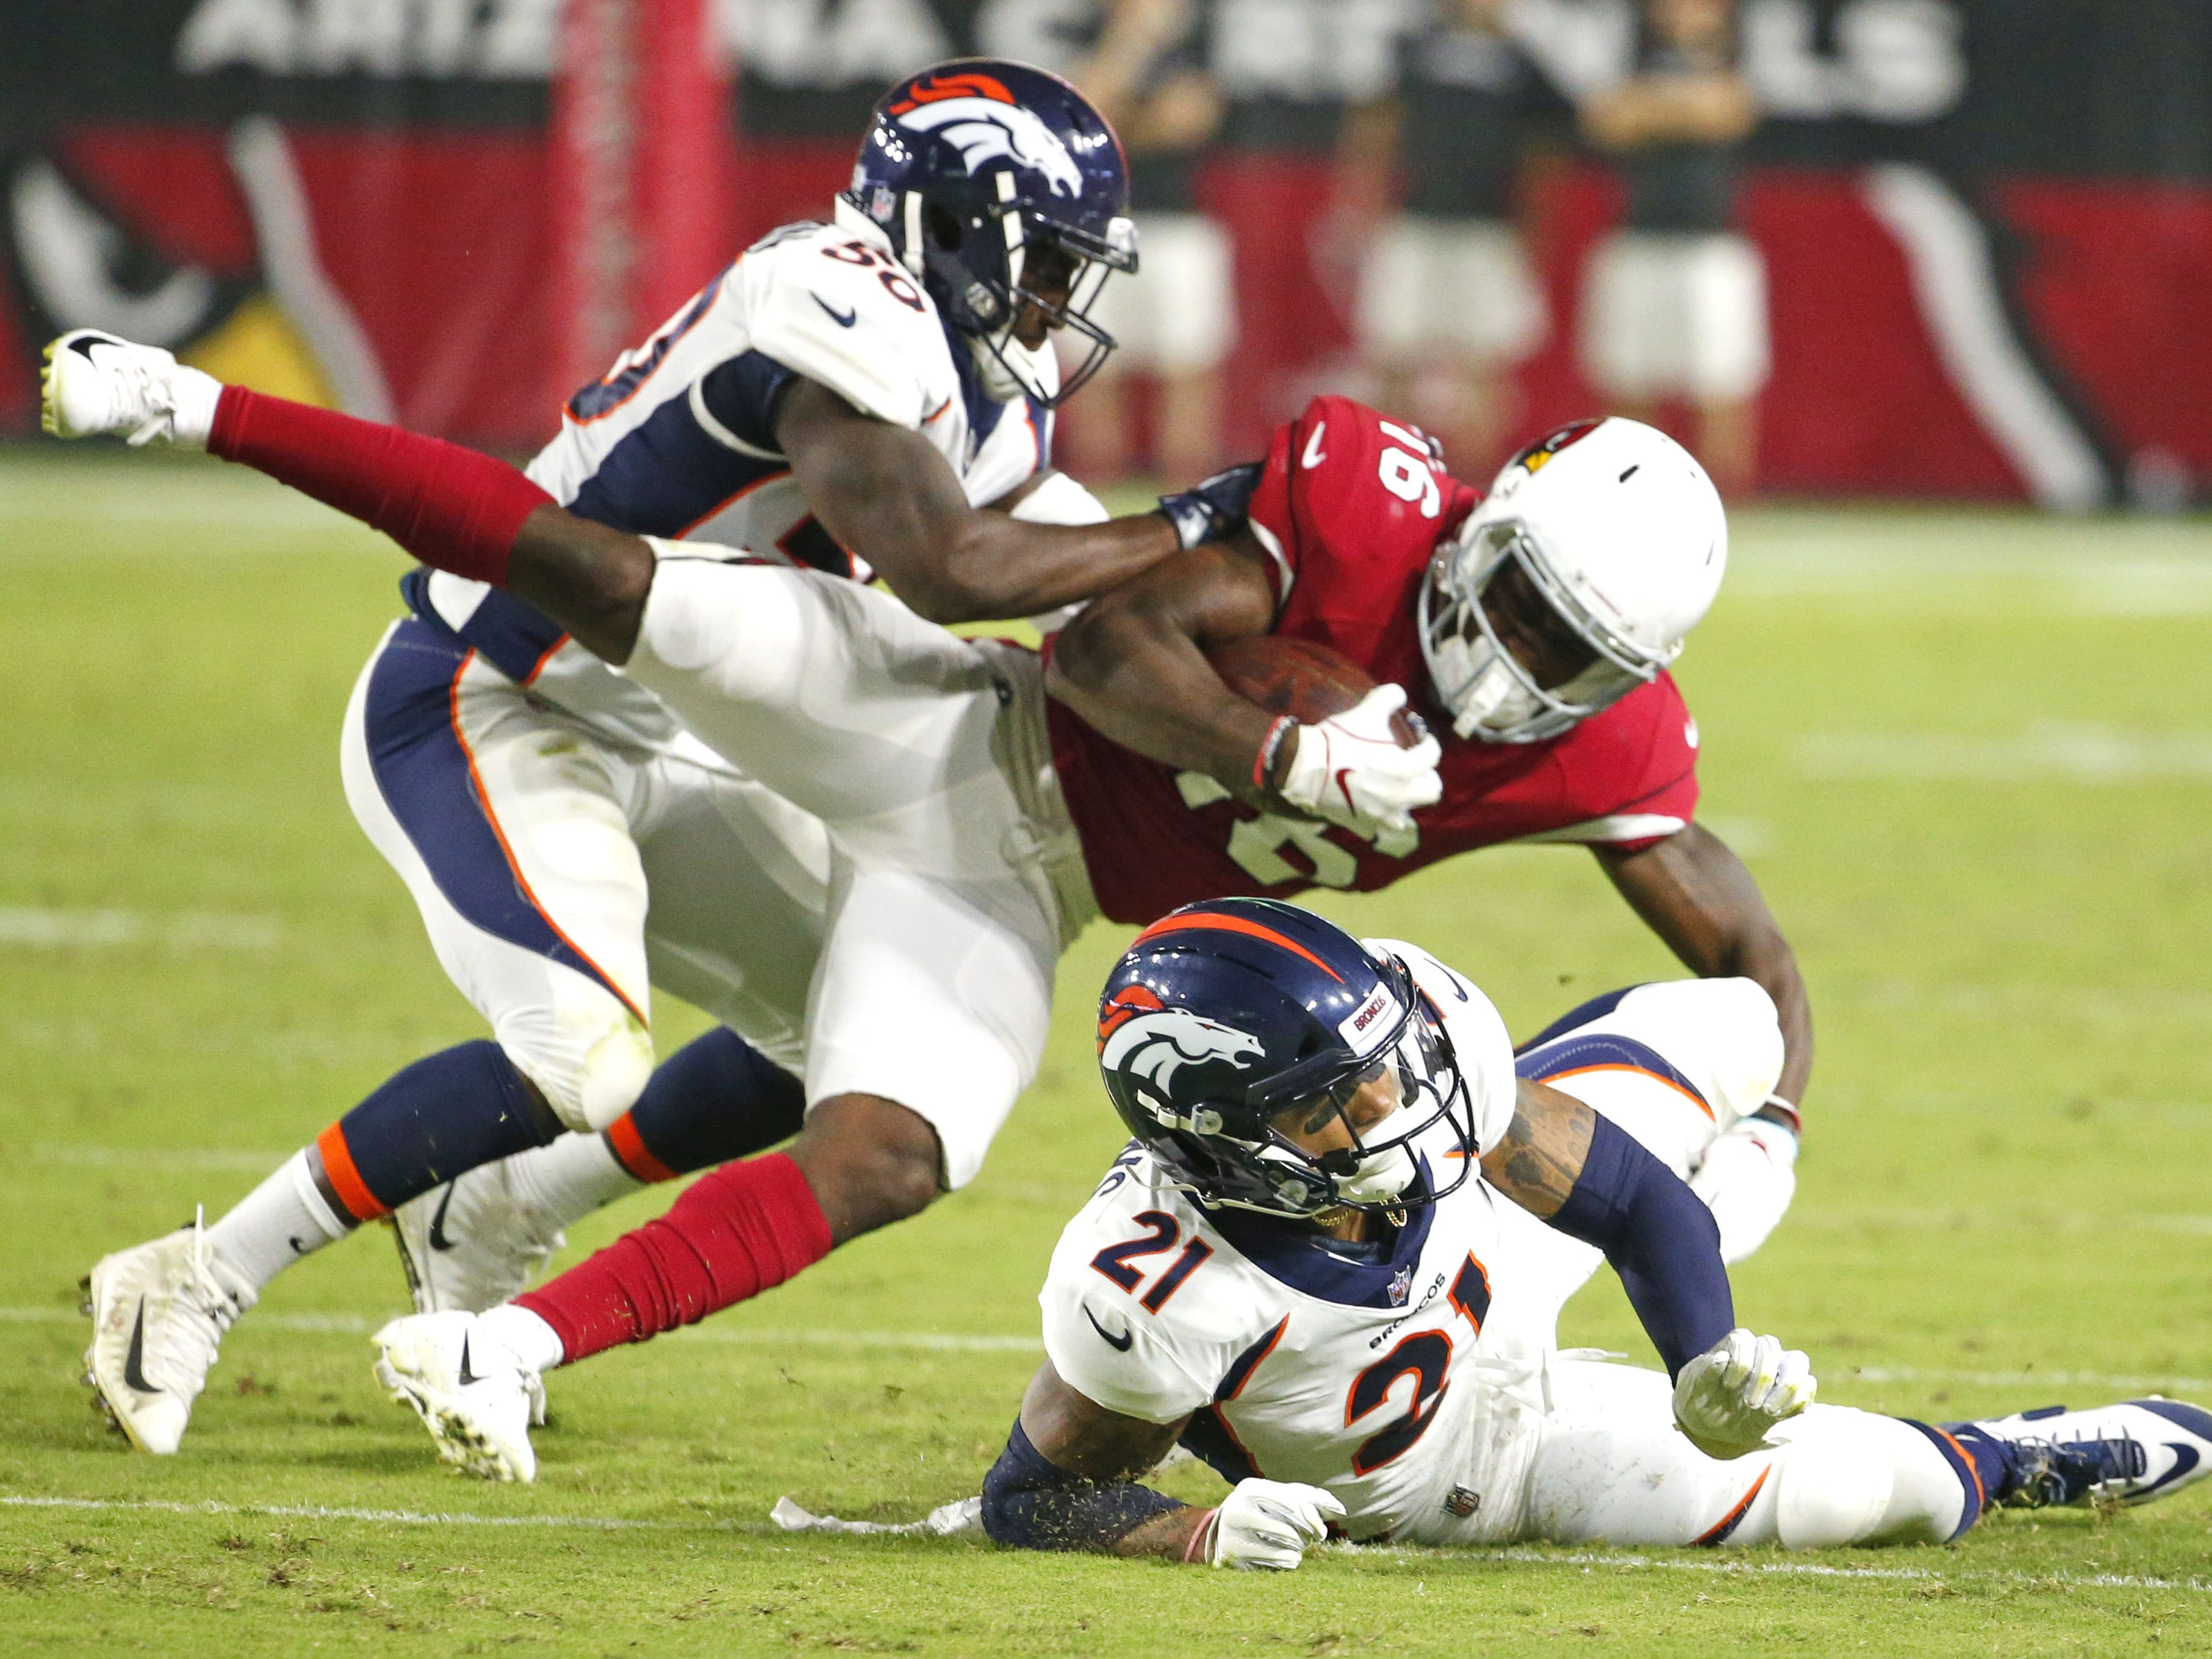 Denver Broncos linebacker Zaire Anderson (50) and defensive back Su'a Cravens (21) tackle Arizona Cardinals wide receiver Trent Sherfield (16)during a NFL game at the University of Phoenix Stadium in Glendale on August 30, 2018.